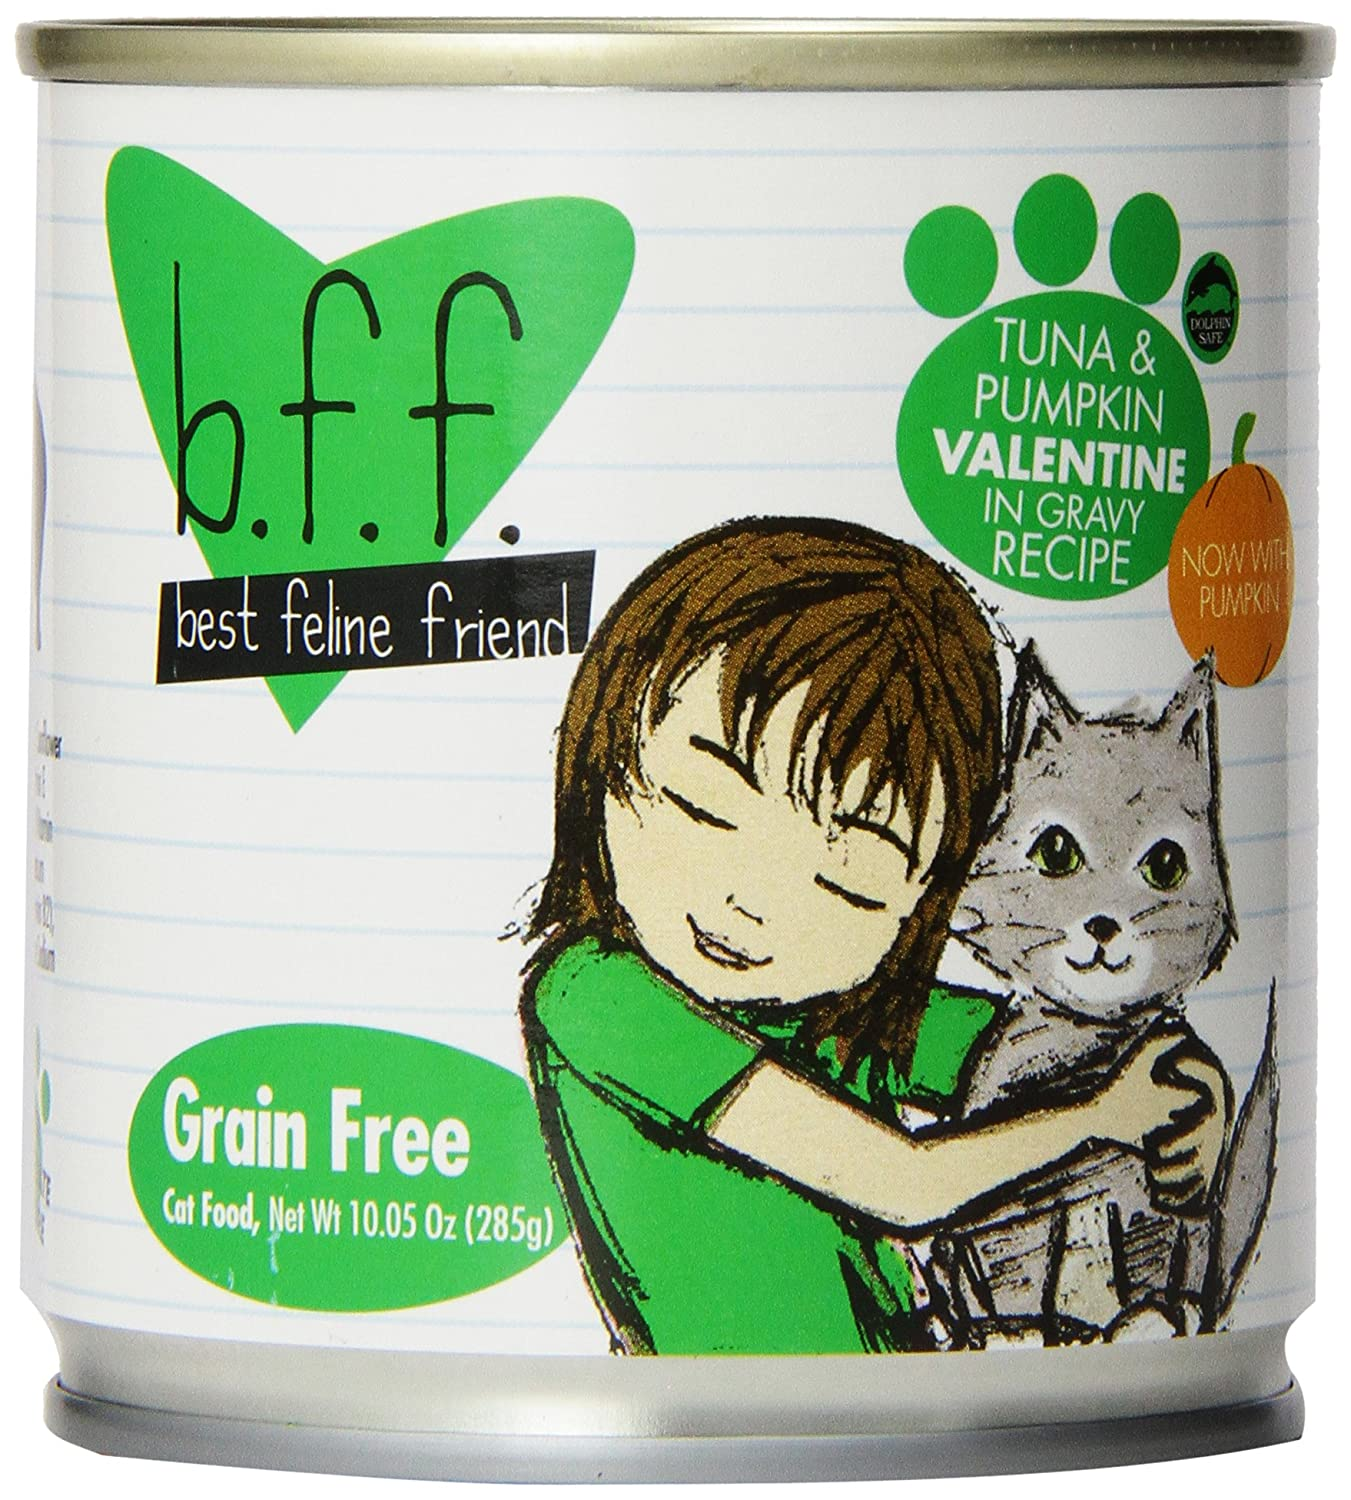 d05ef4aaf07b Com Best Feline Friend B F Grain Free Cat Food By